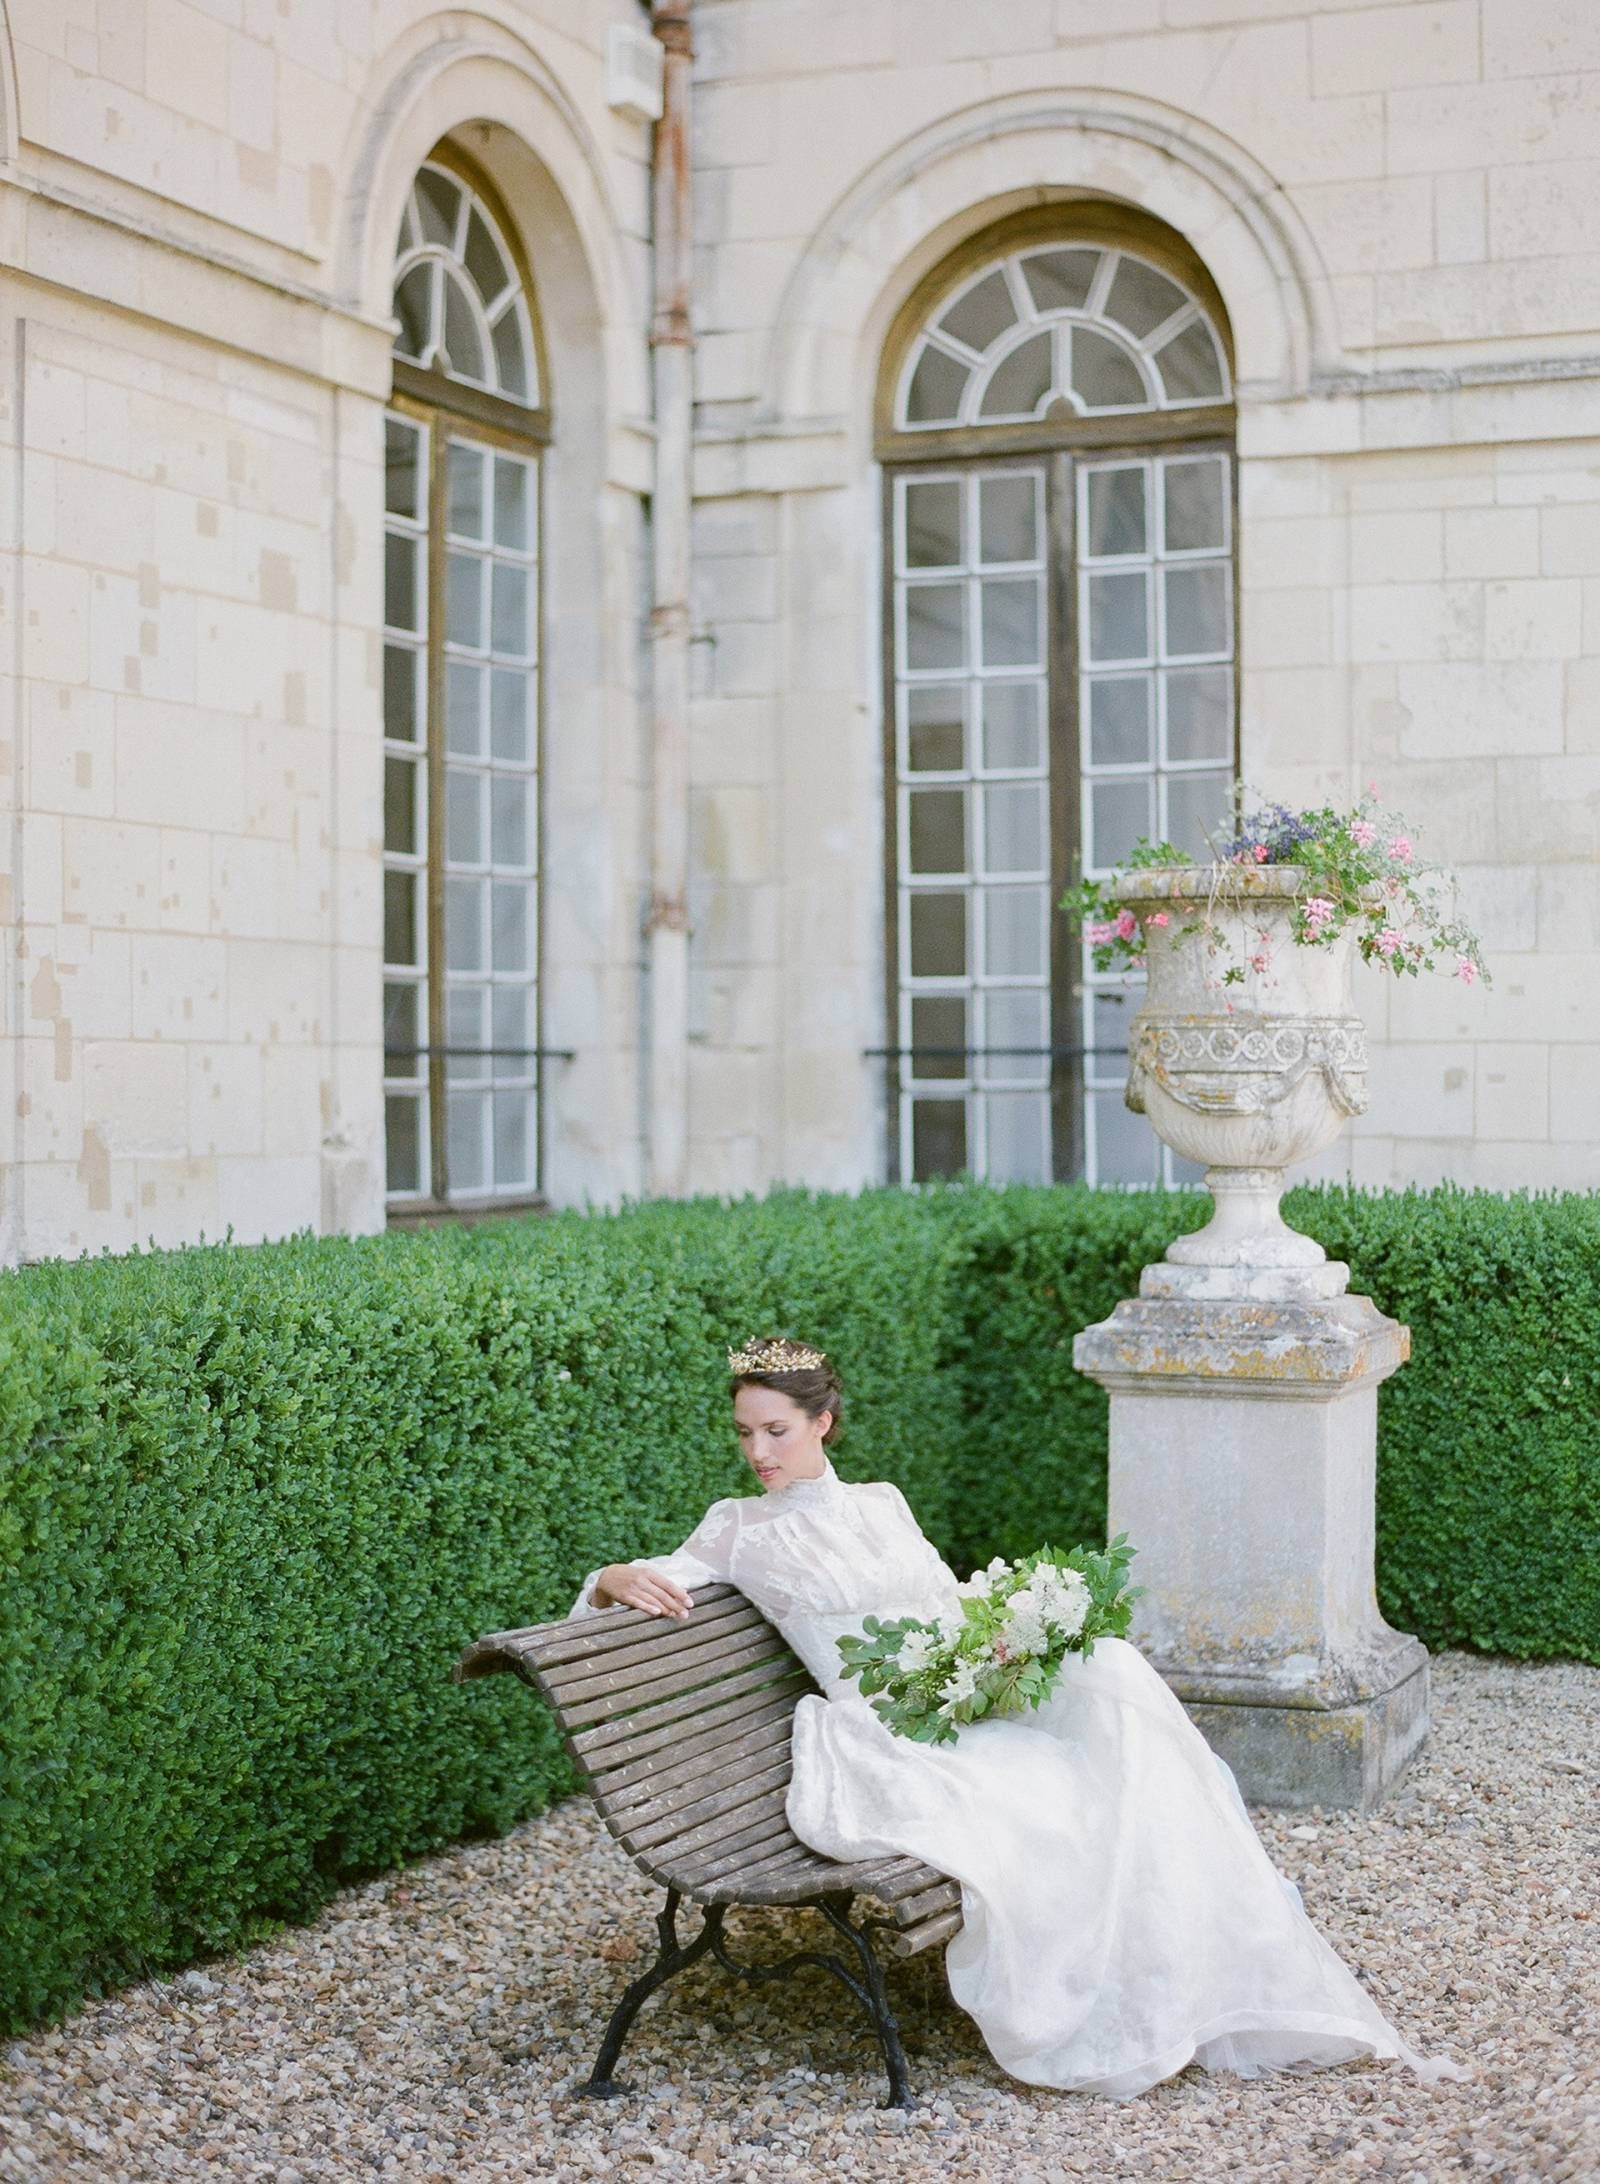 19th Century French Wedding Inspiration At Chateau De Montgobert France Wedding Inspiration French Wedding France Wedding French Themed Wedding